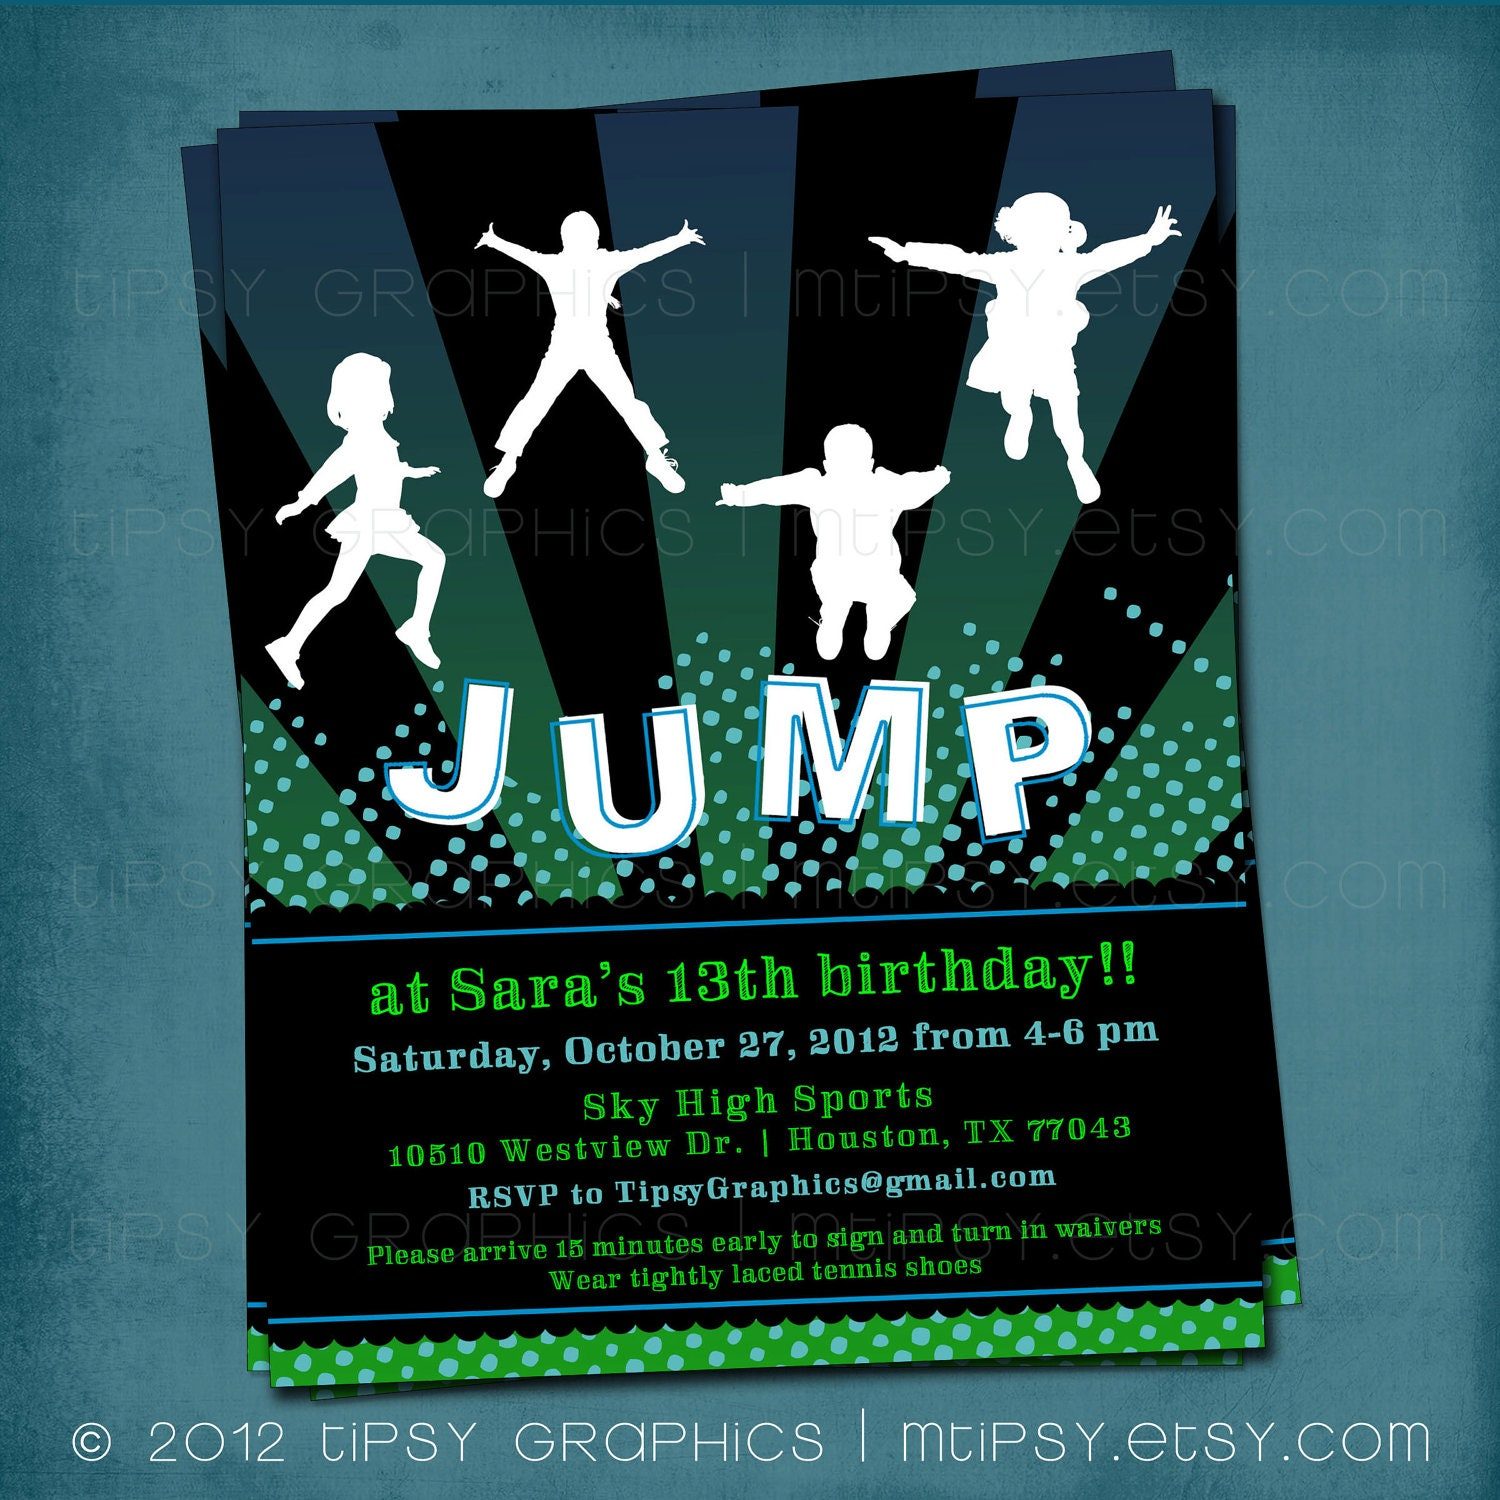 Trampoline Party Invitations: Girly JUMP Trampoline Or Bounce House Birthday Party Invite By